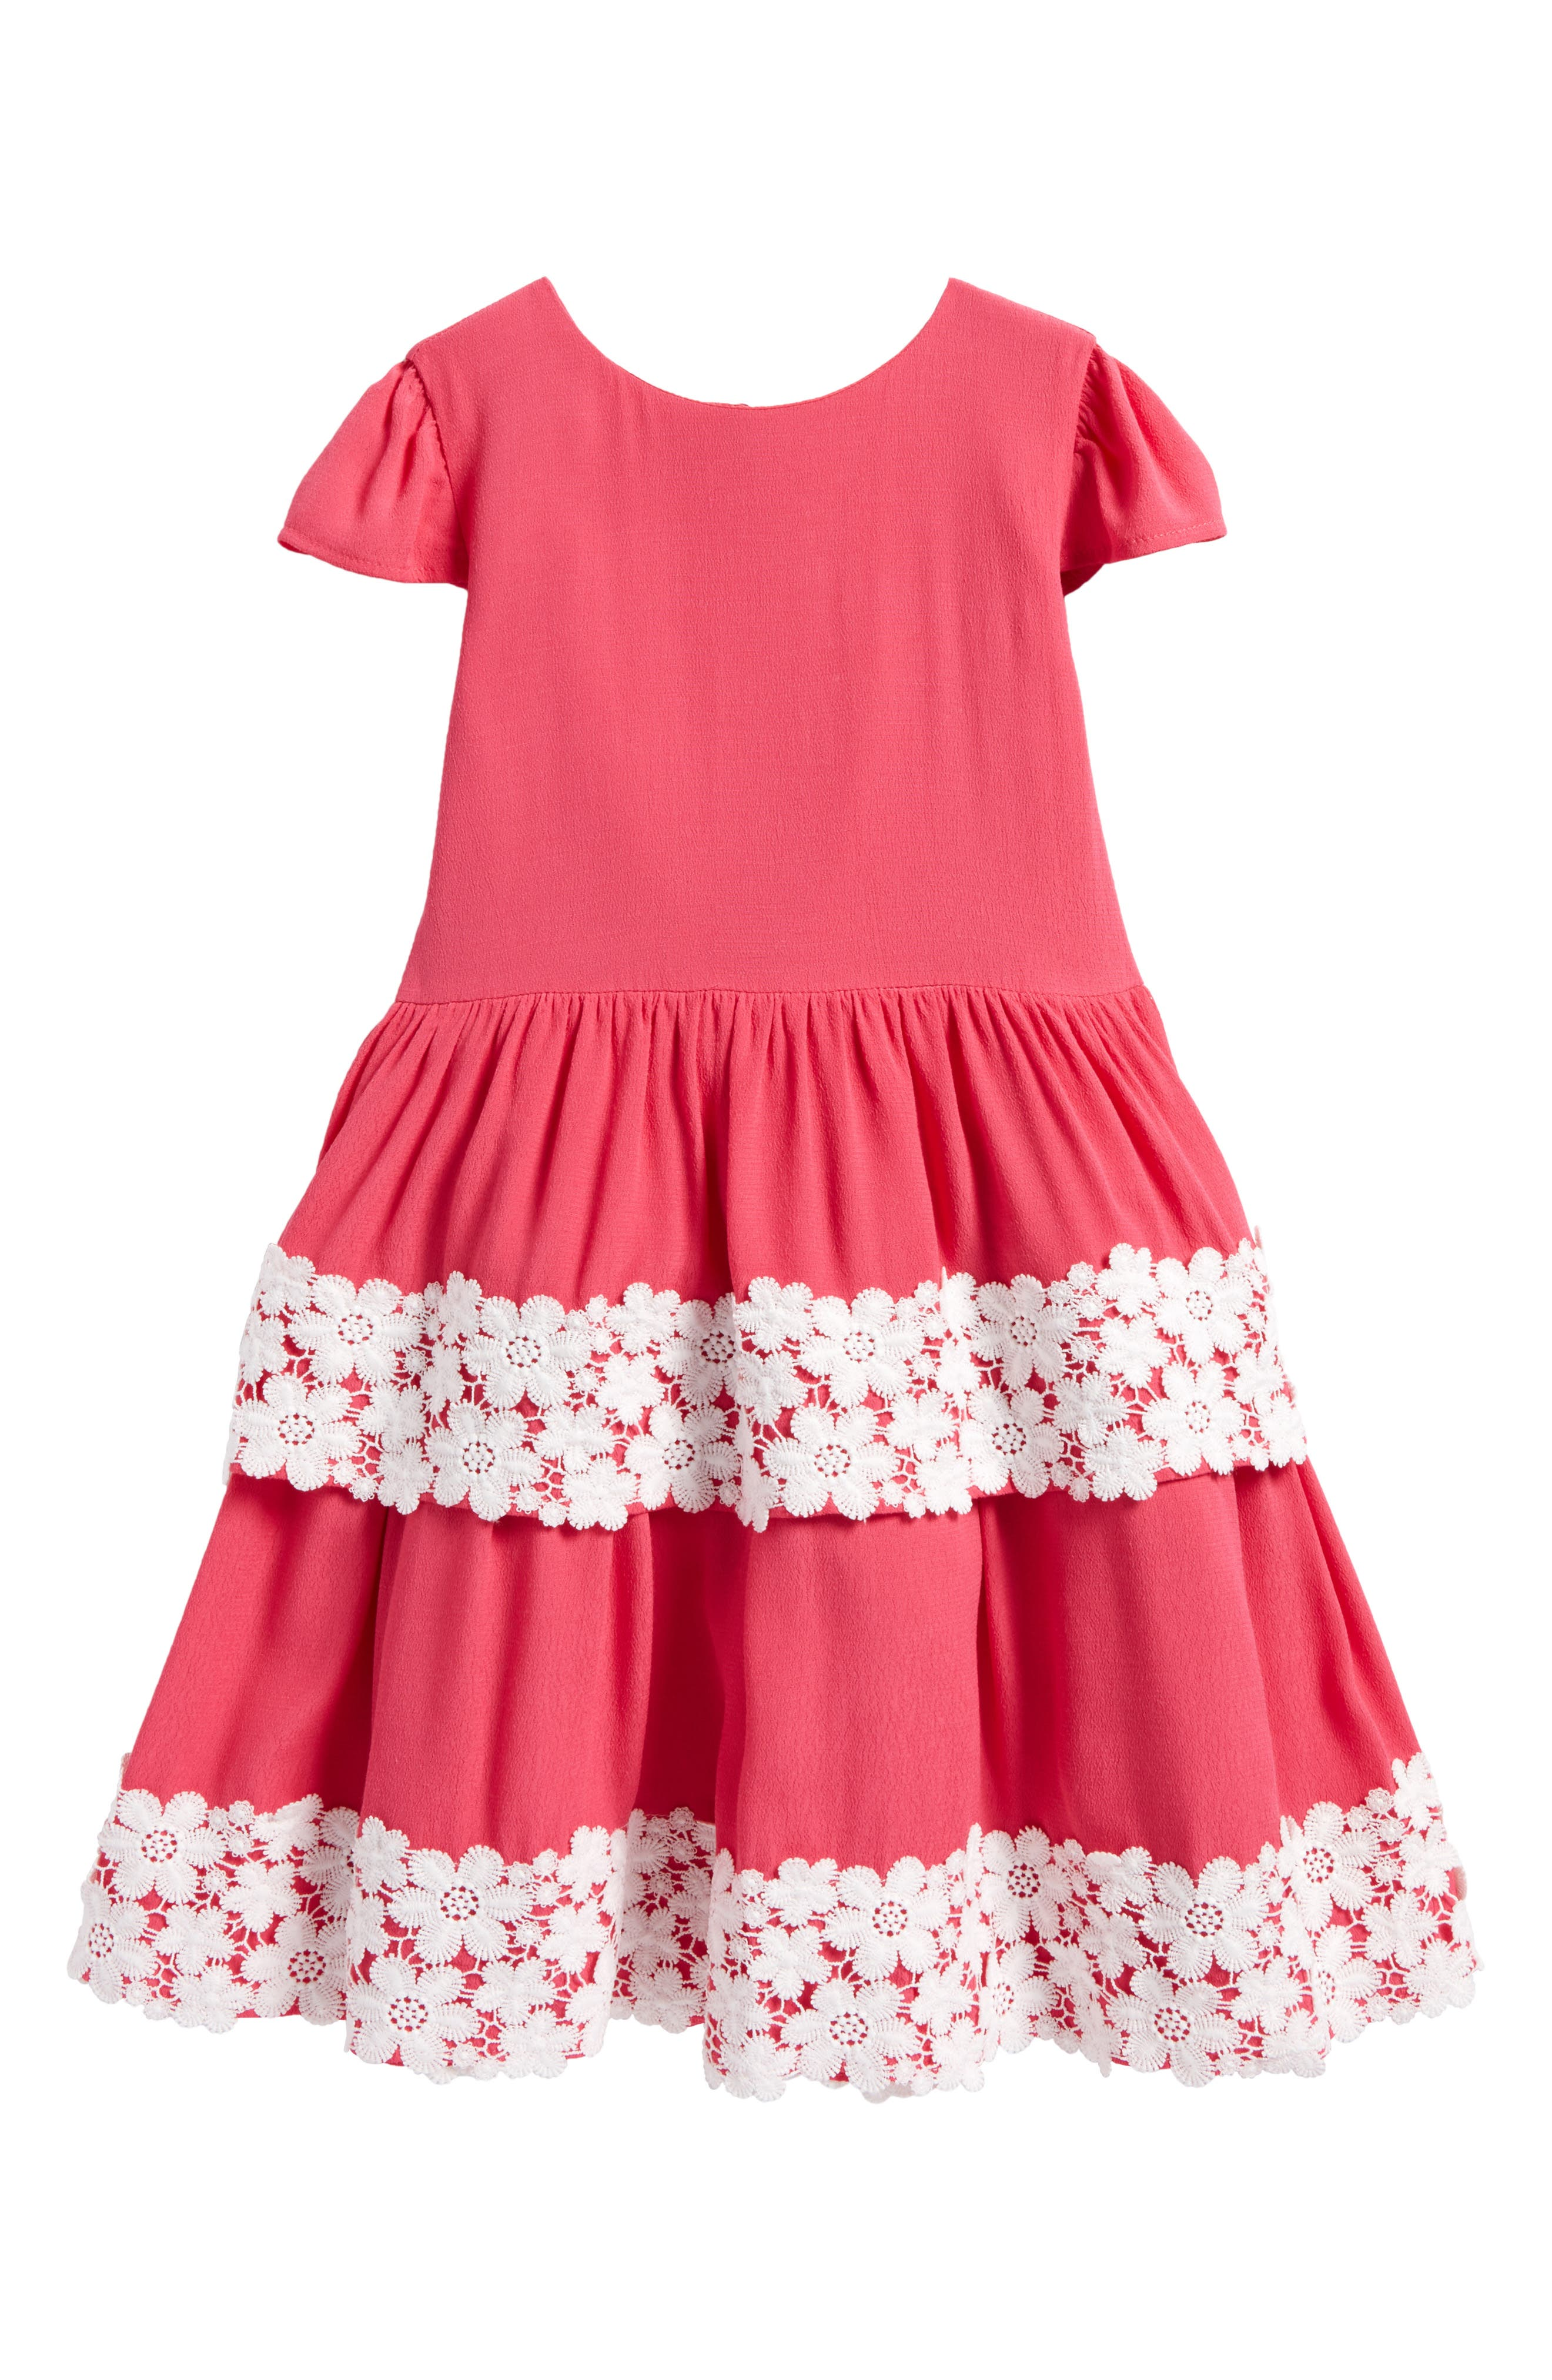 Tiered Skirt Dress,                         Main,                         color, 953